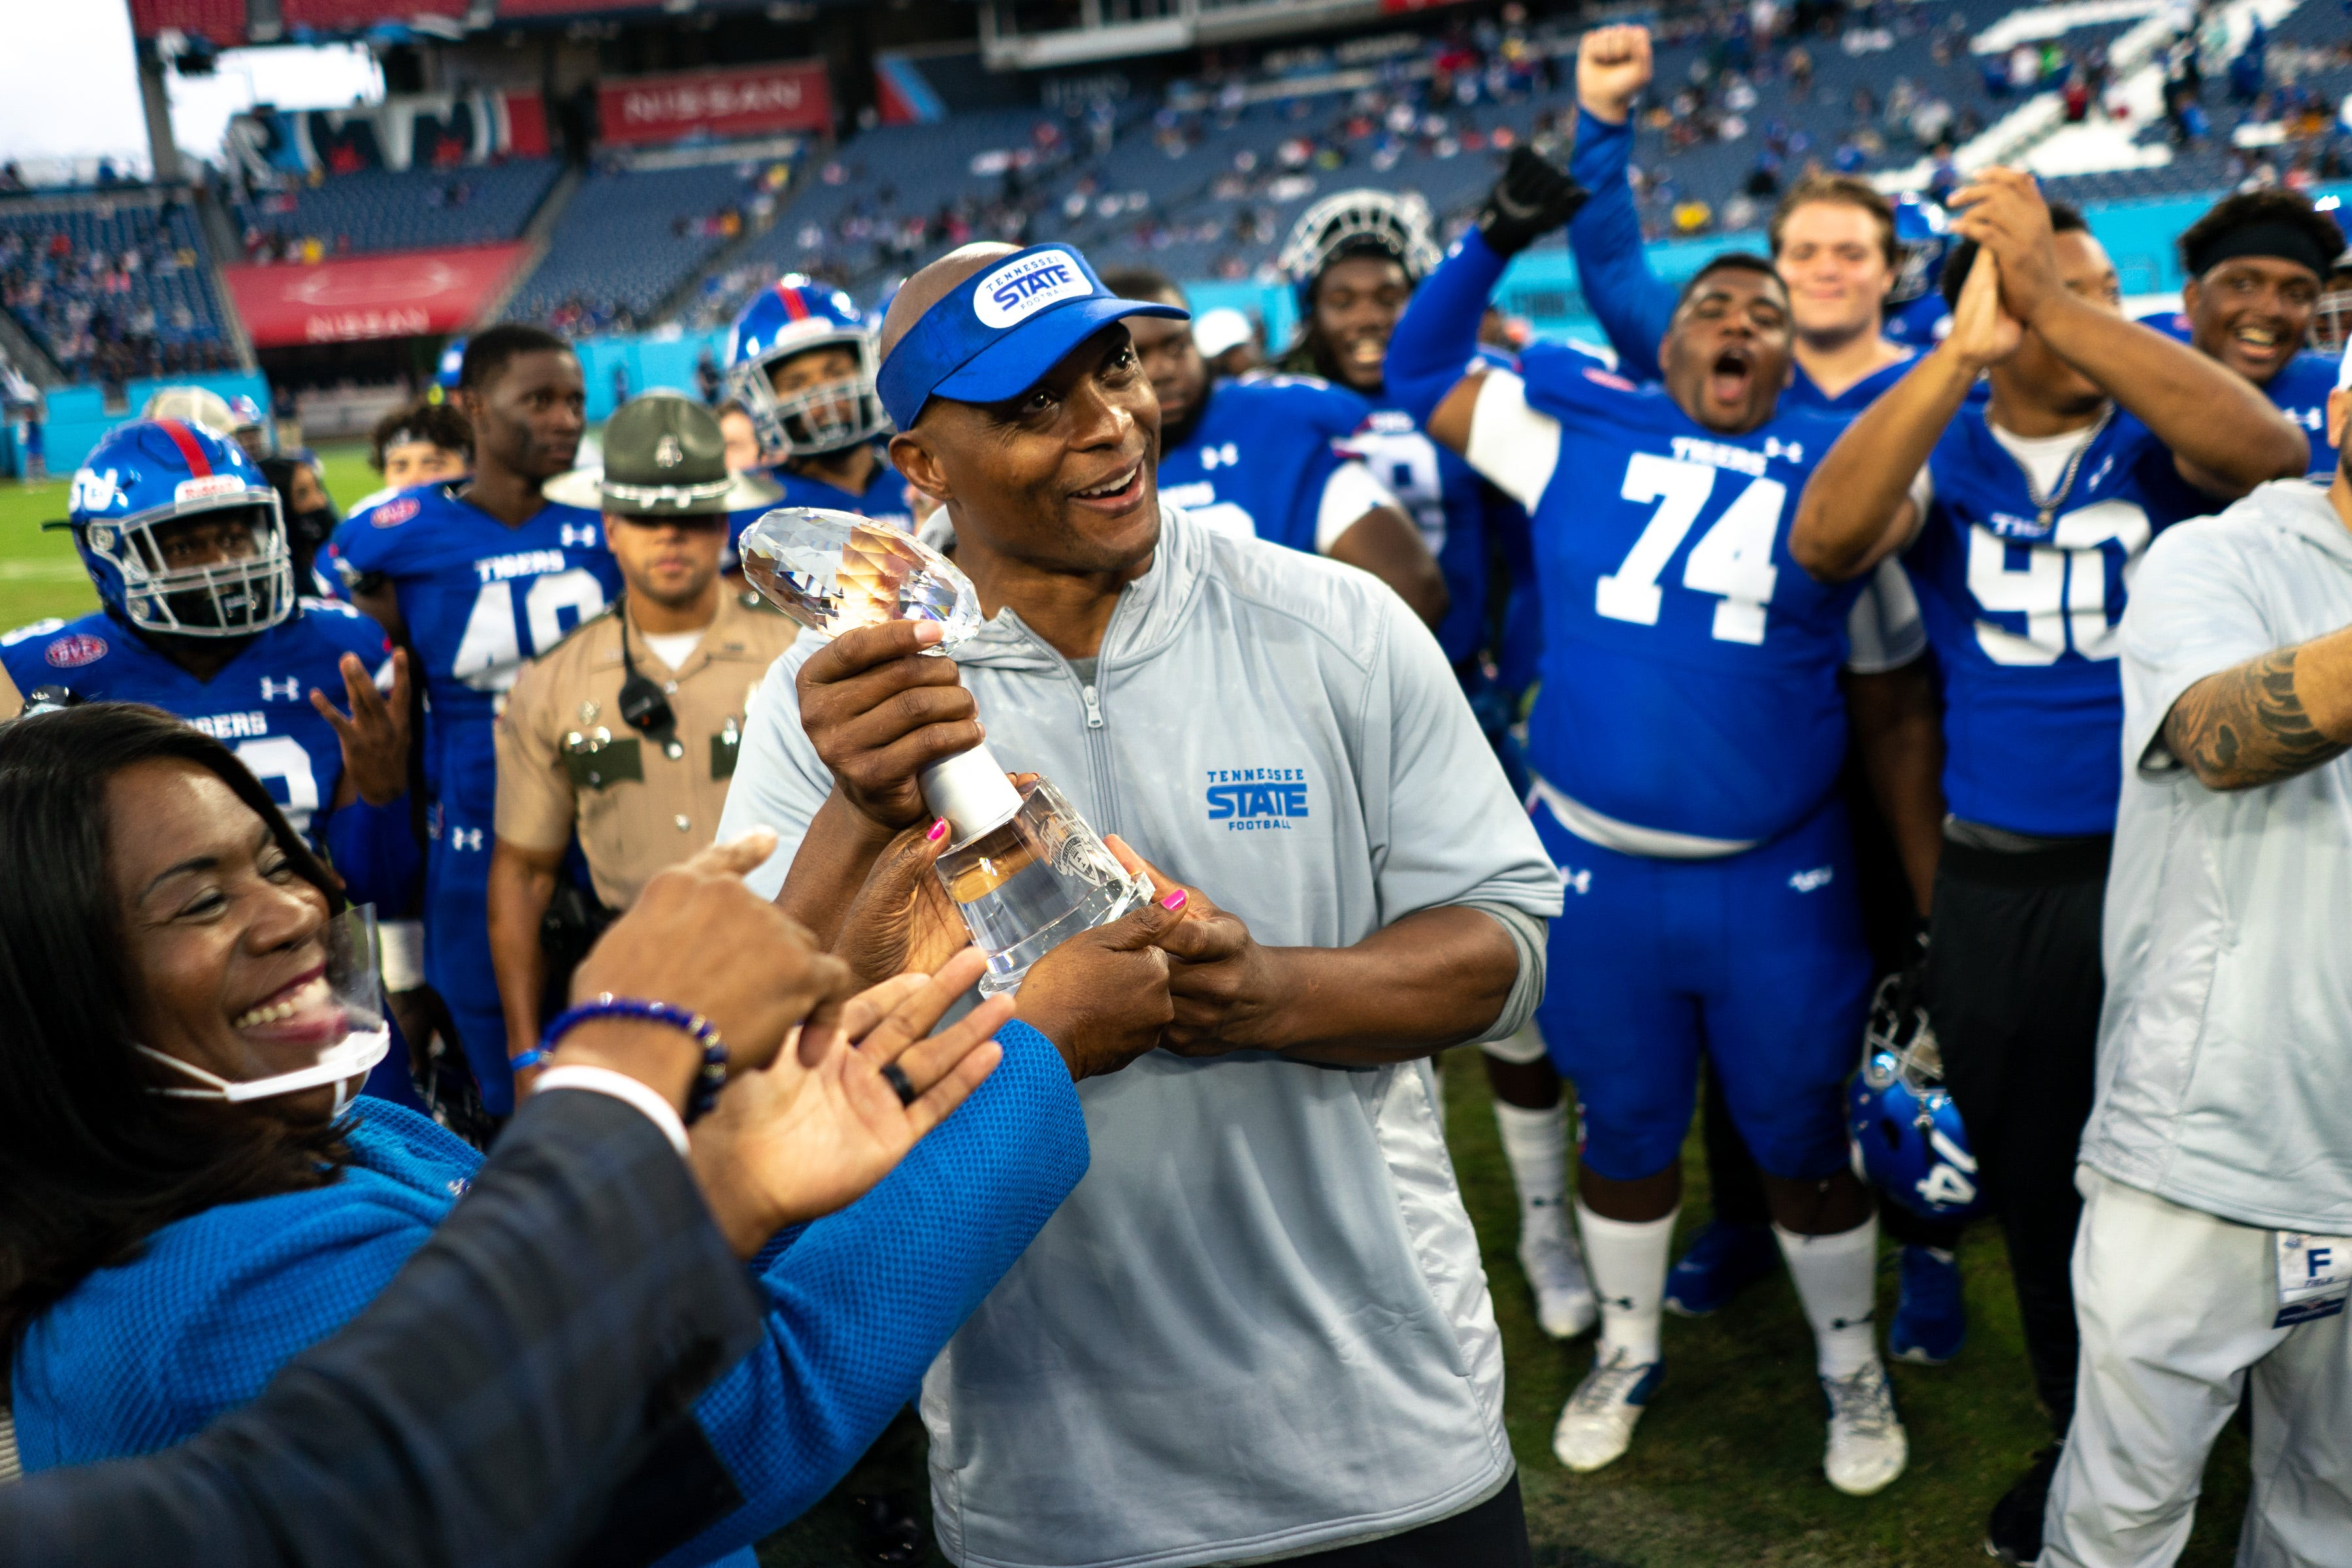 Eddie George talks about his first Tennessee State win coming at Nissan Stadium